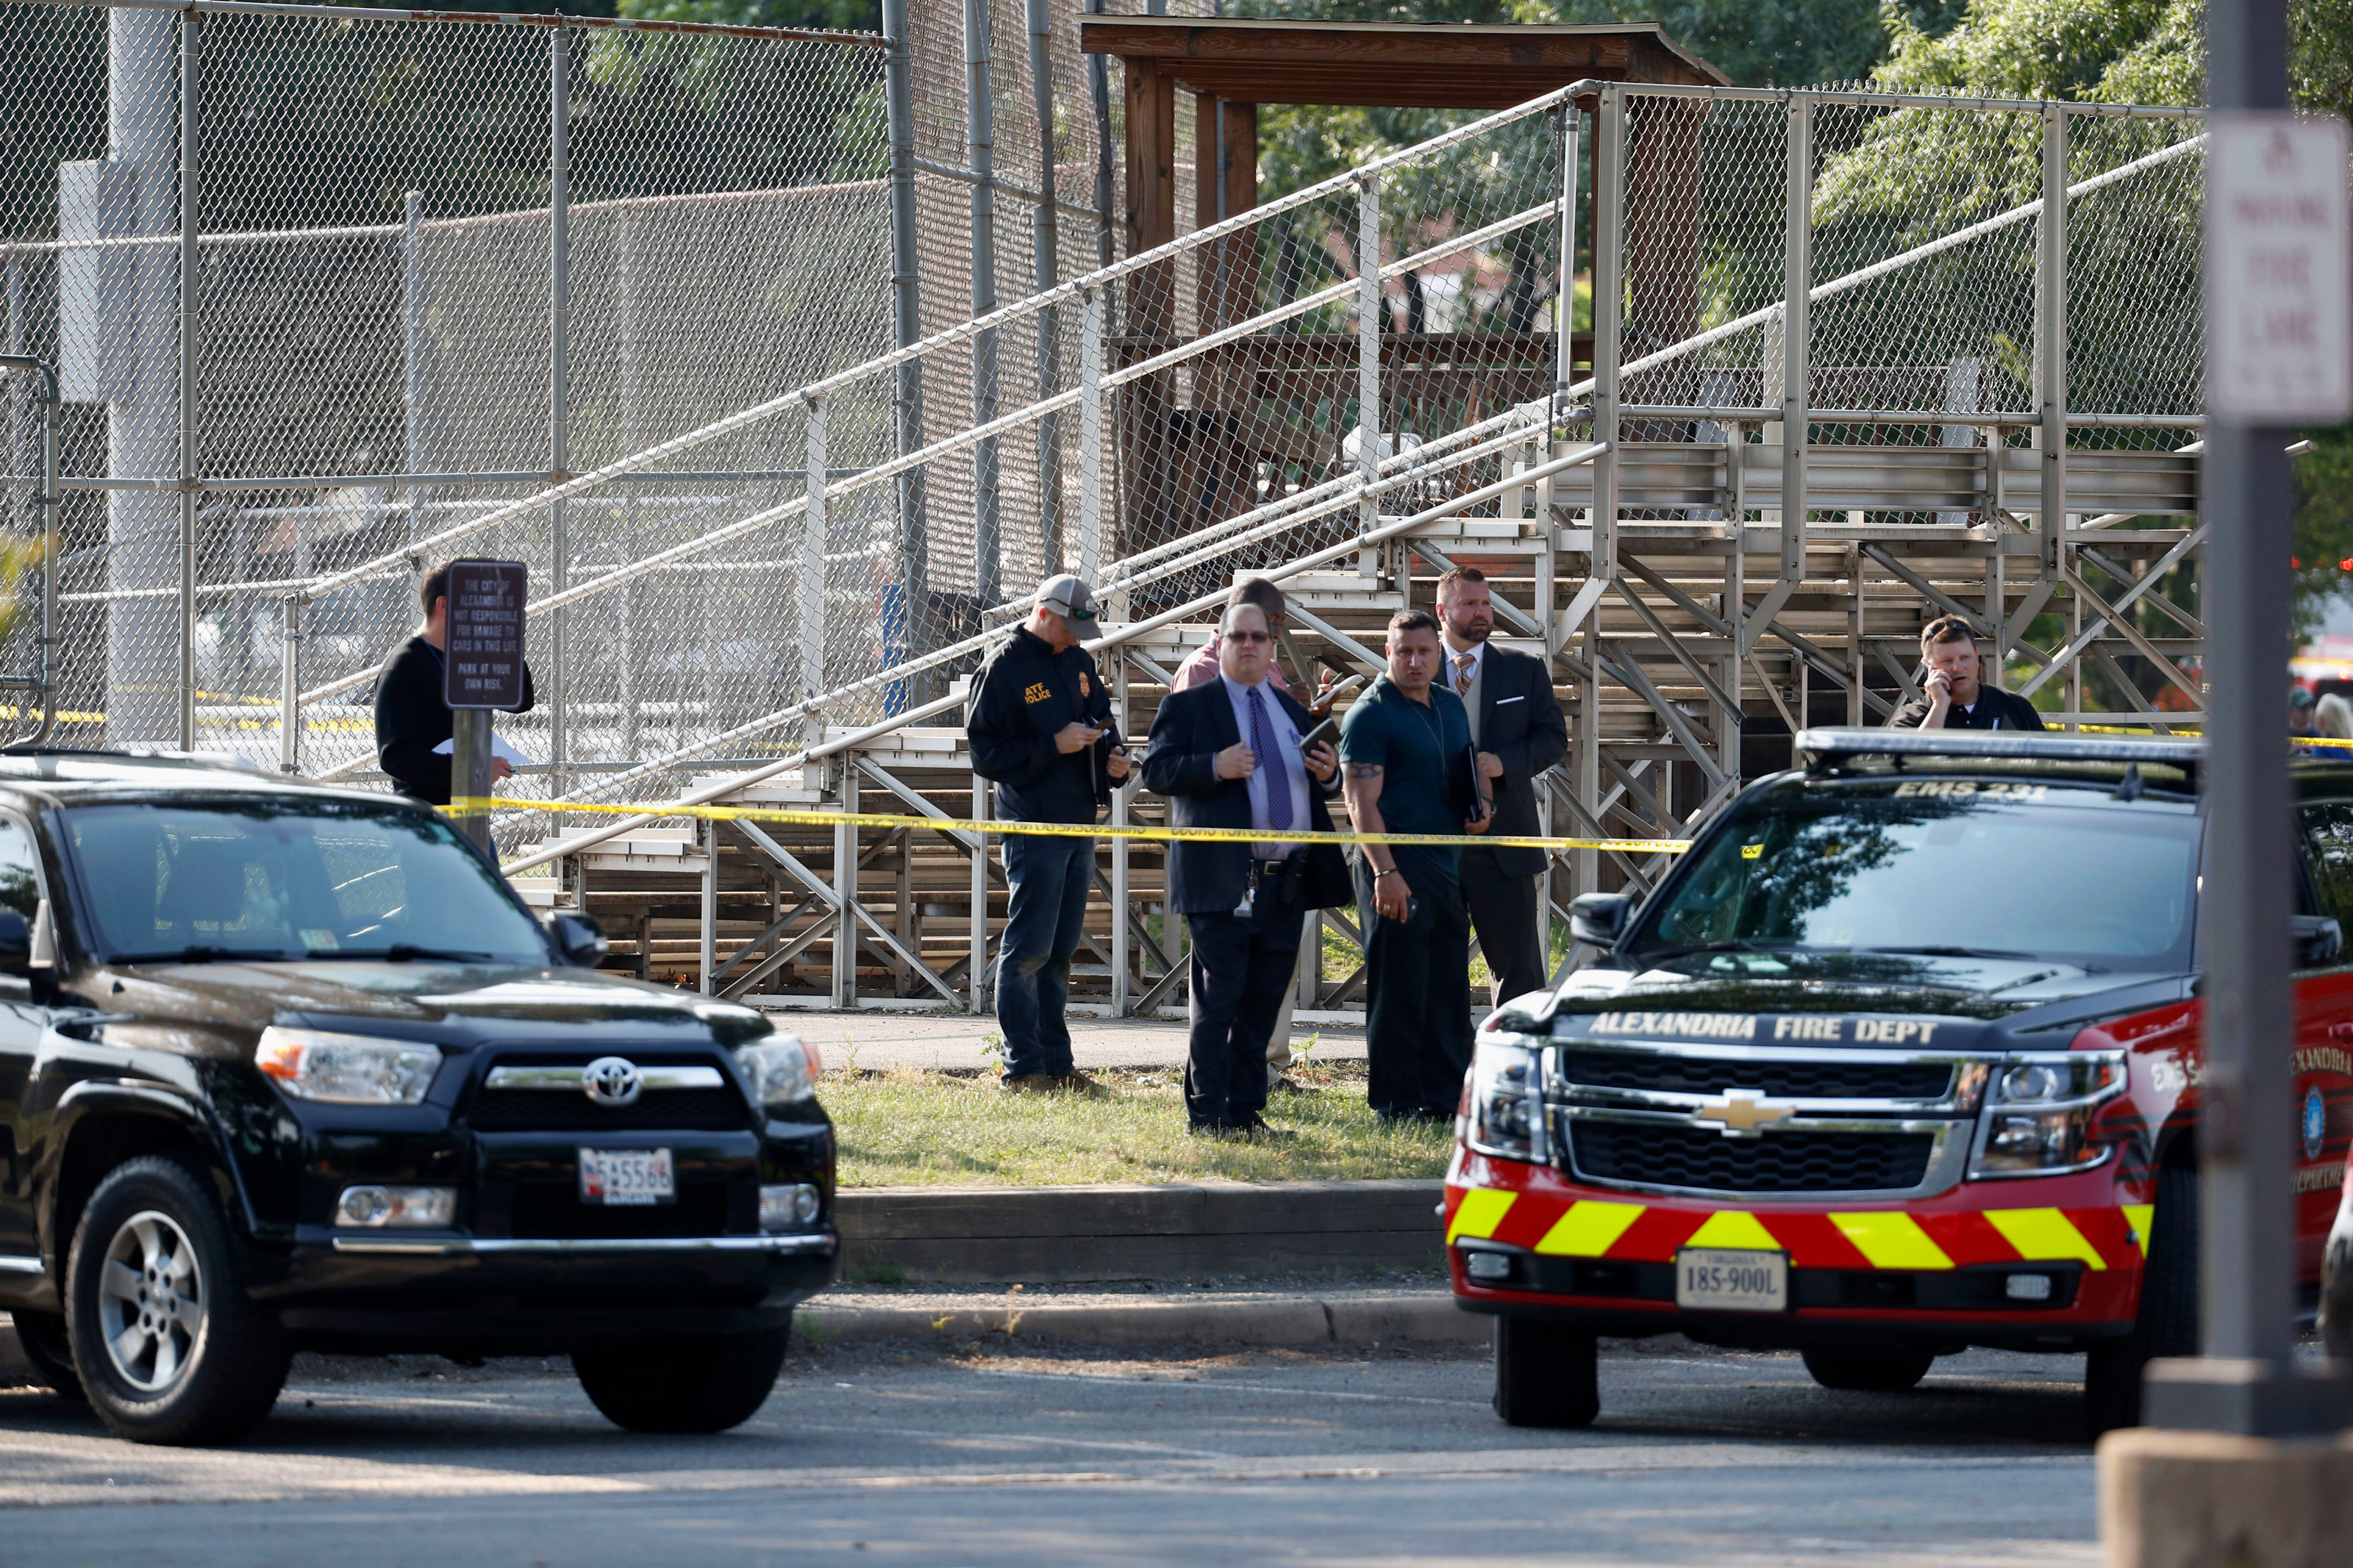 <p>Law enforcement officers investigate the scene of a shooting near a baseball field in Alexandria, Va., Wednesday, June 14, 2017, where House Majority Whip Steve Scalise of La. was shot at a Congressional baseball practice.</p>